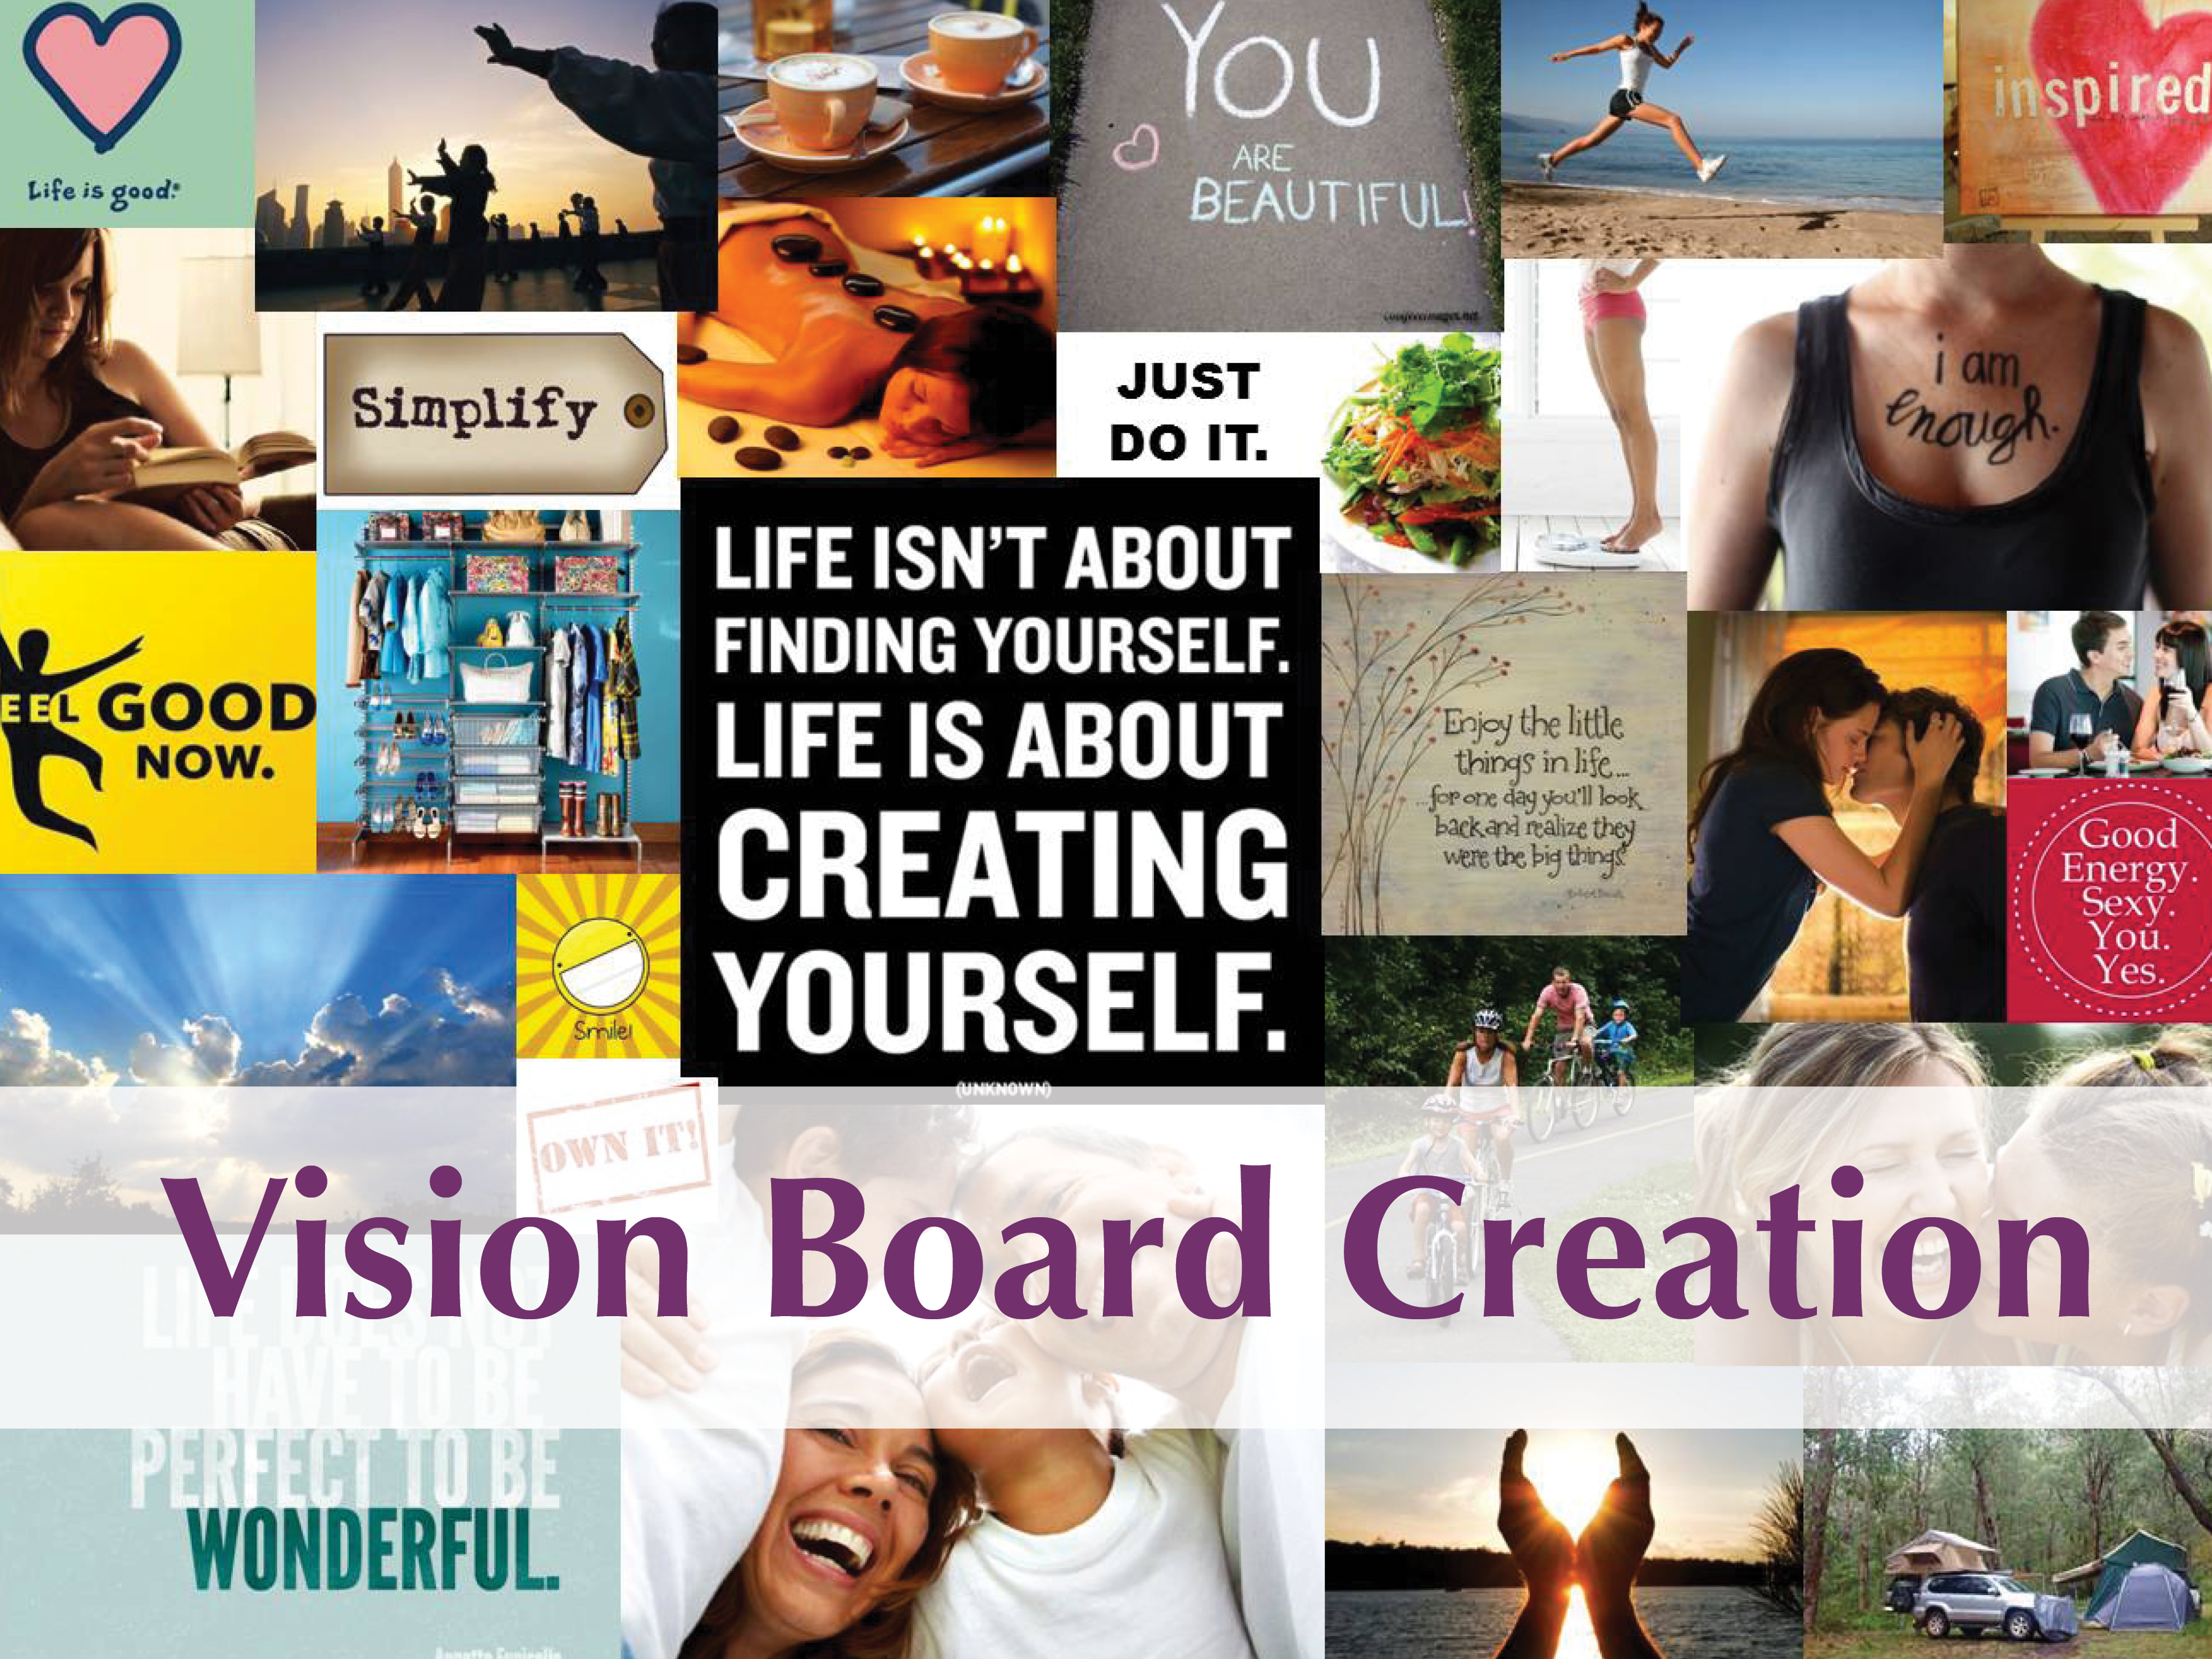 vision board workshop 2020 by infinite love academy marbella shanti som